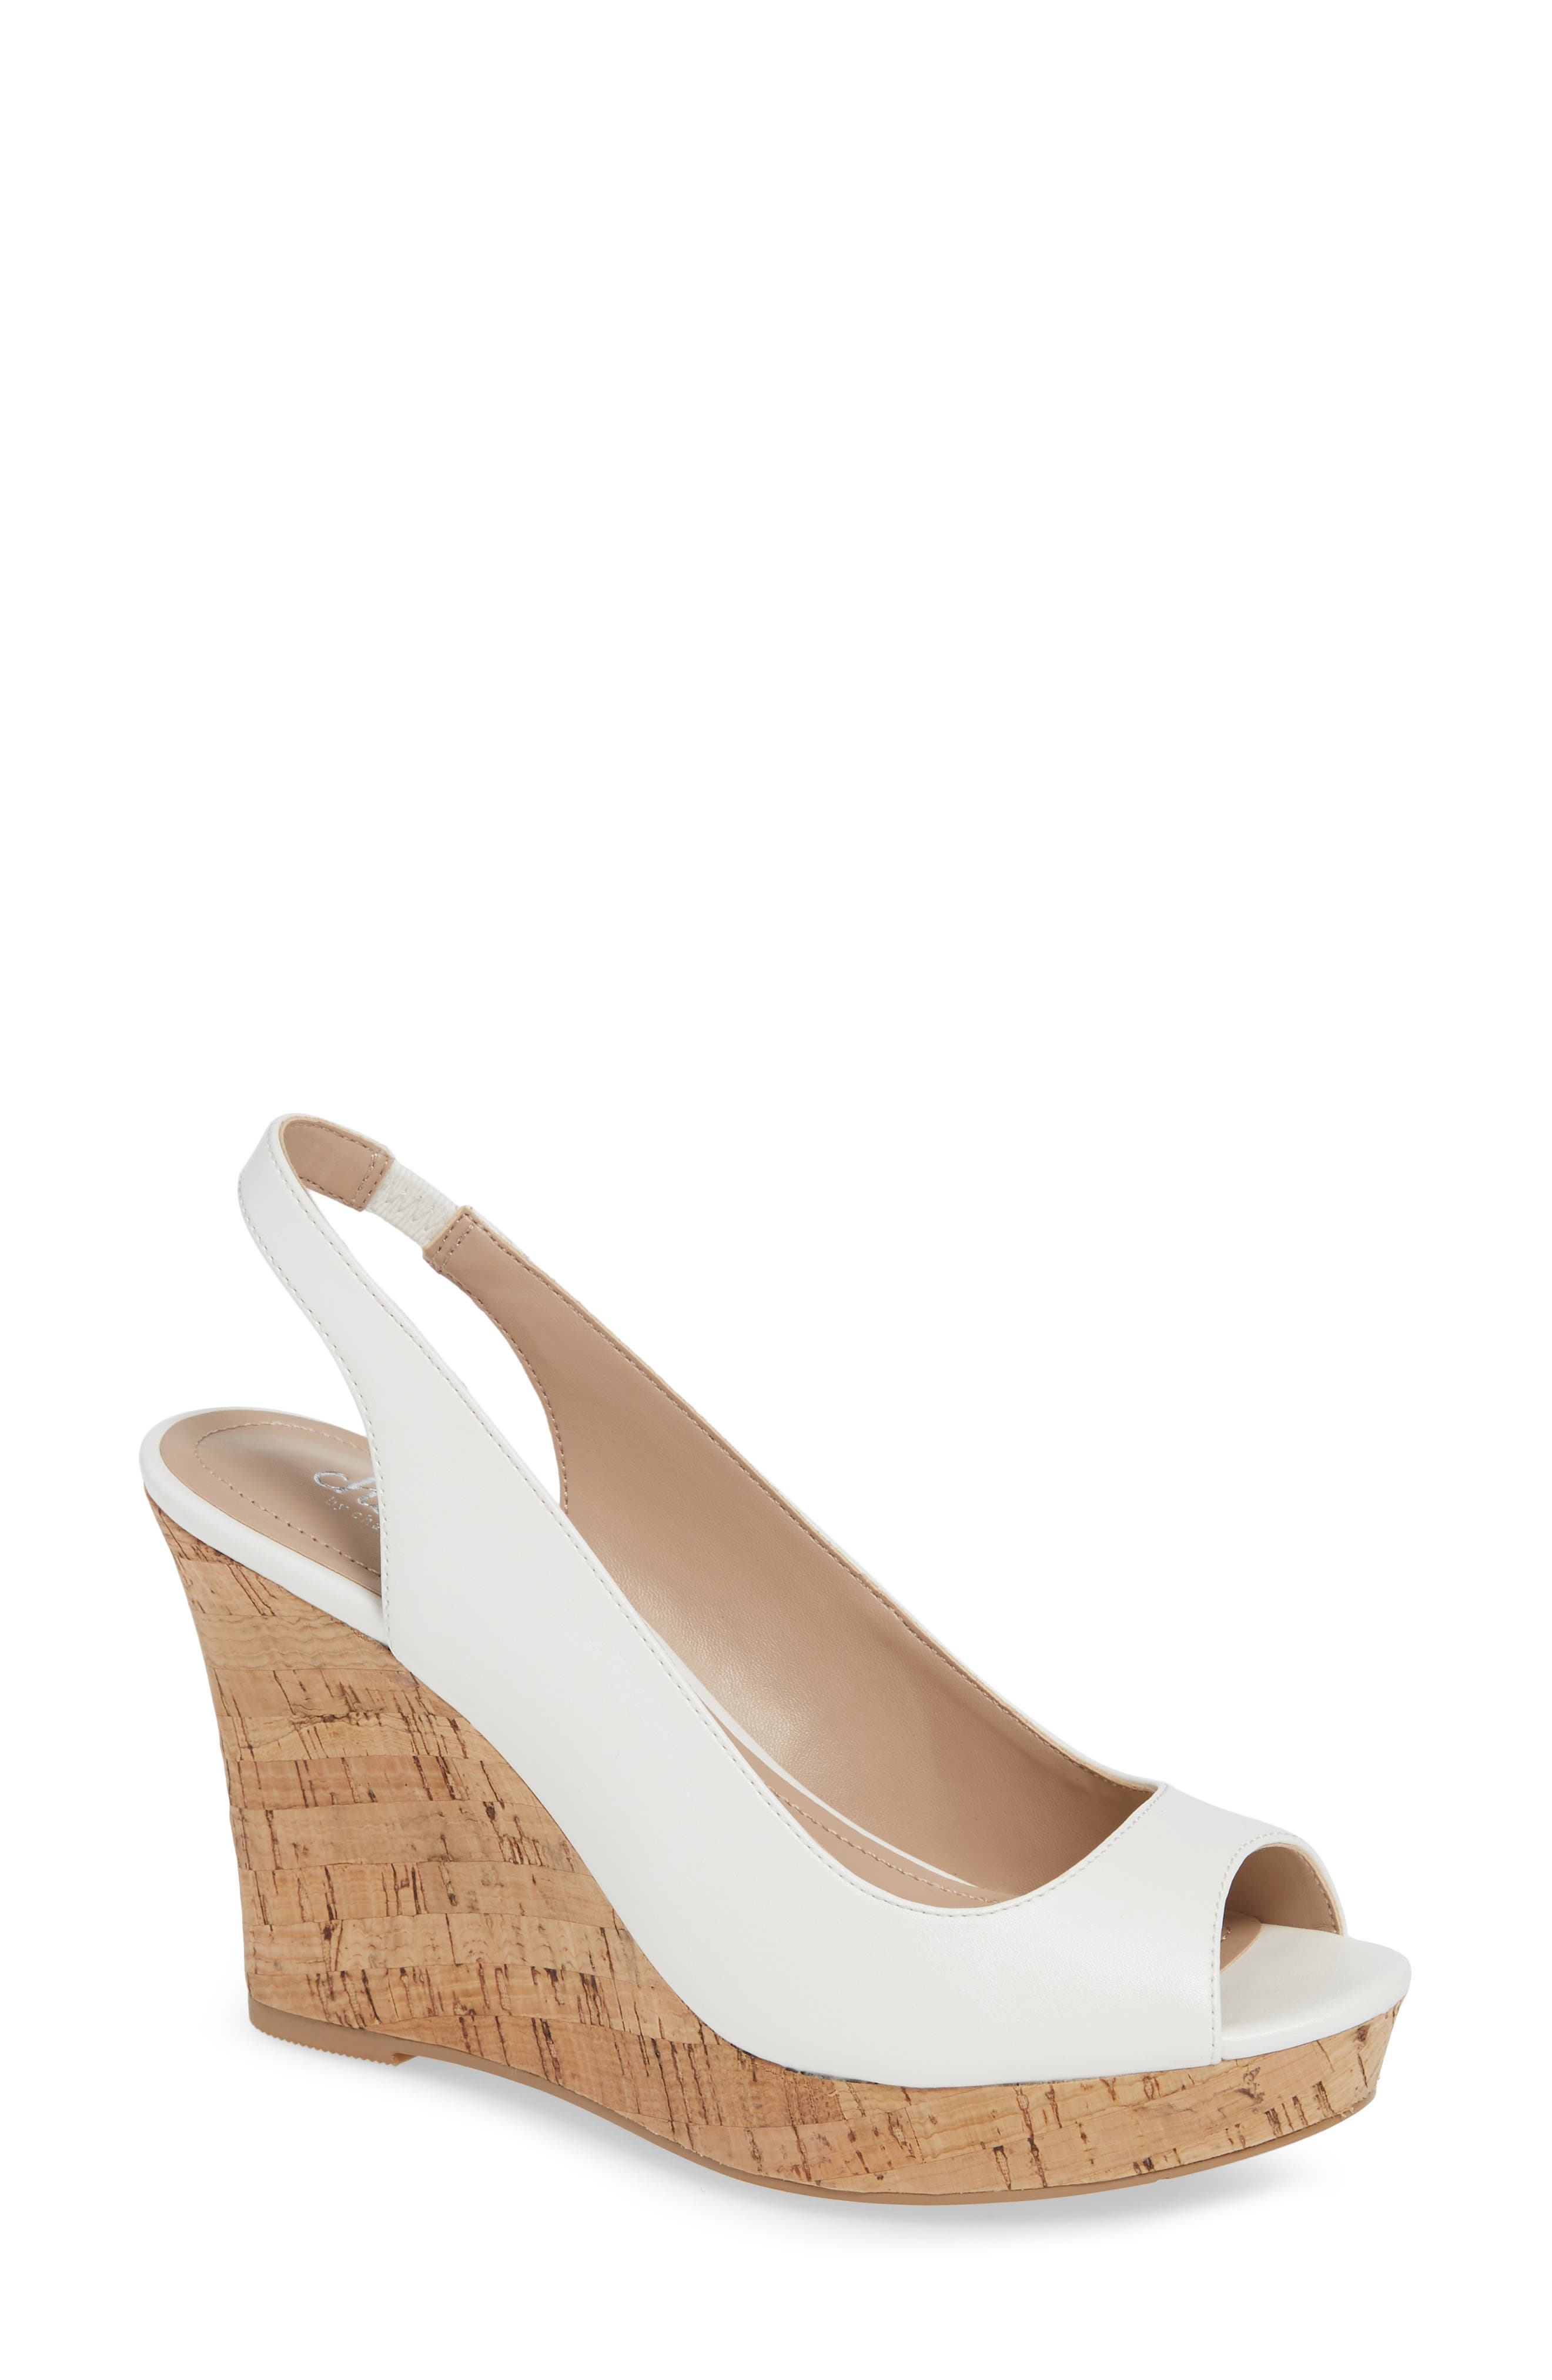 CHARLES BY CHARLES DAVID Leandra Slingback Wedge, Main, color, 100